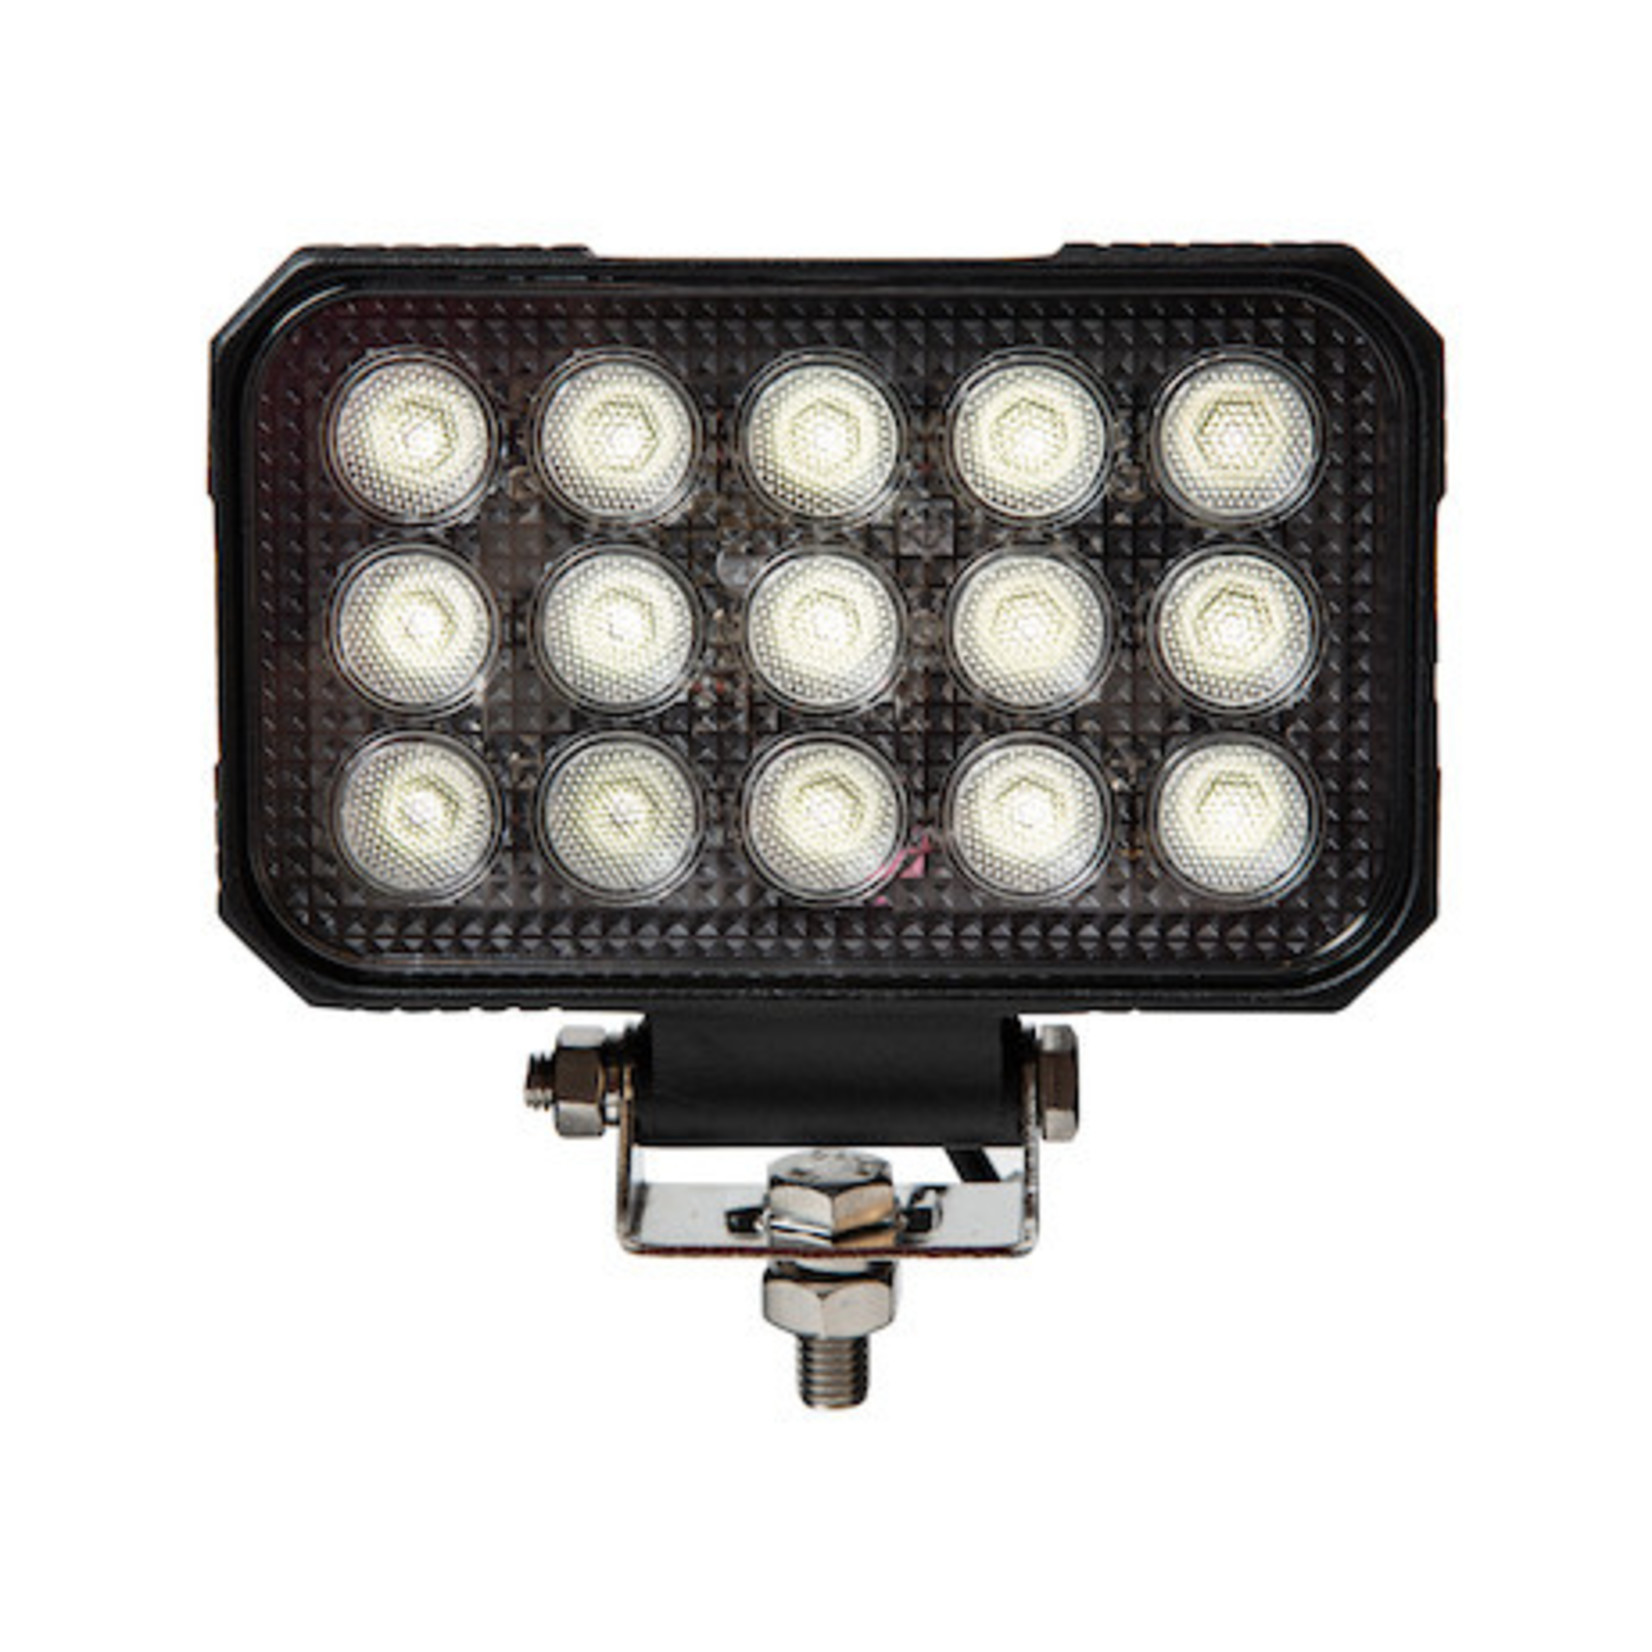 Buyers Products Company Ultra Bright 6 Inch Wide Rectangular LED Flood Light